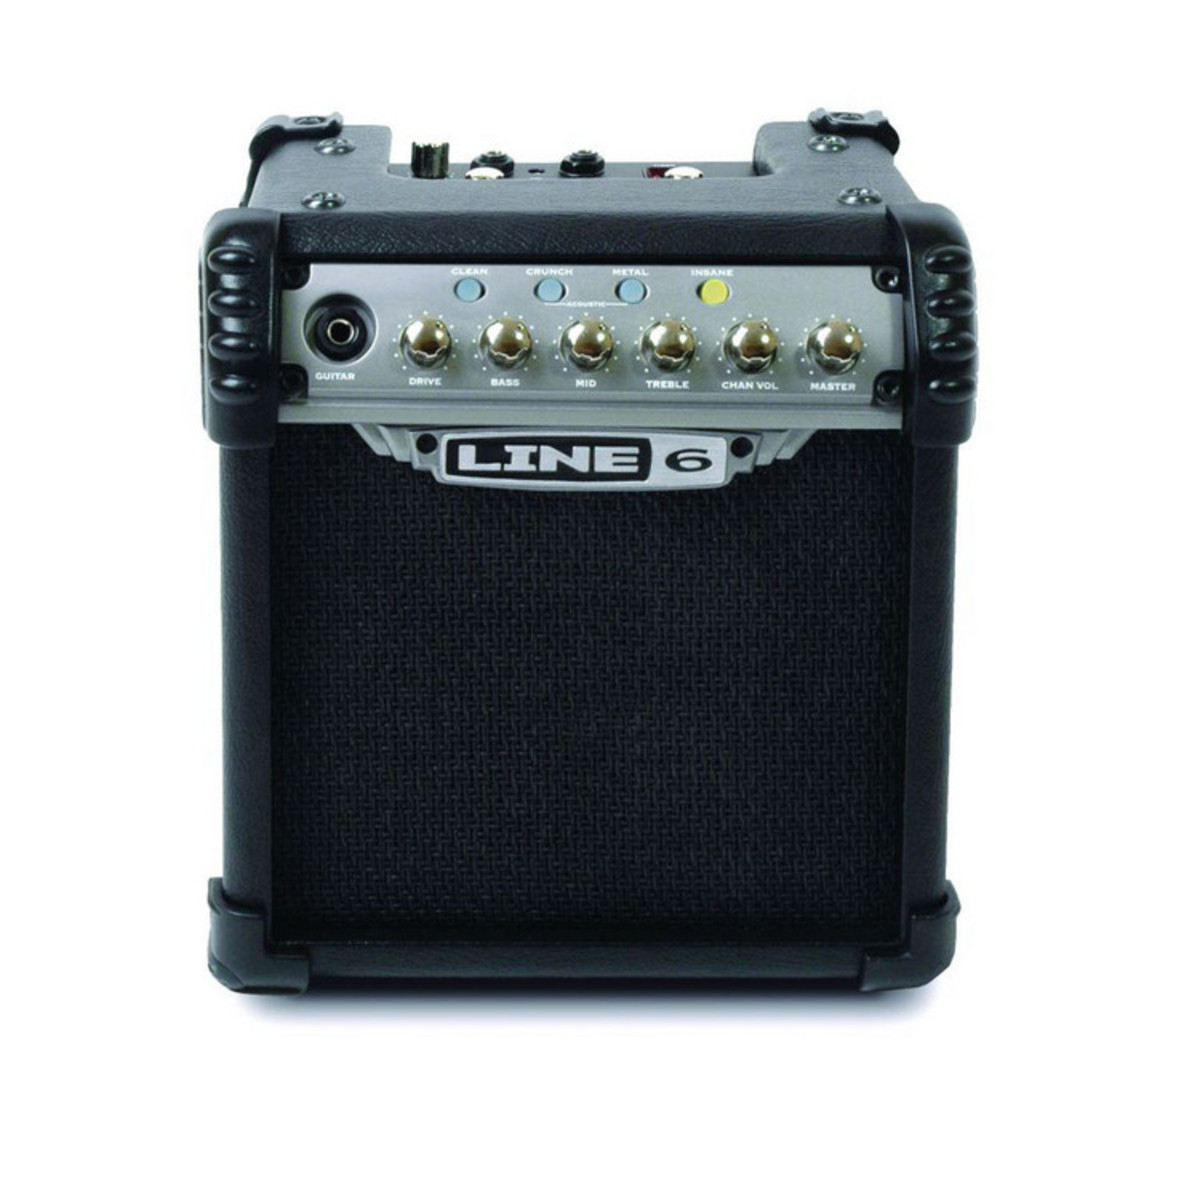 Line 6 Micro Spider Combo Guitar Amplifier 1